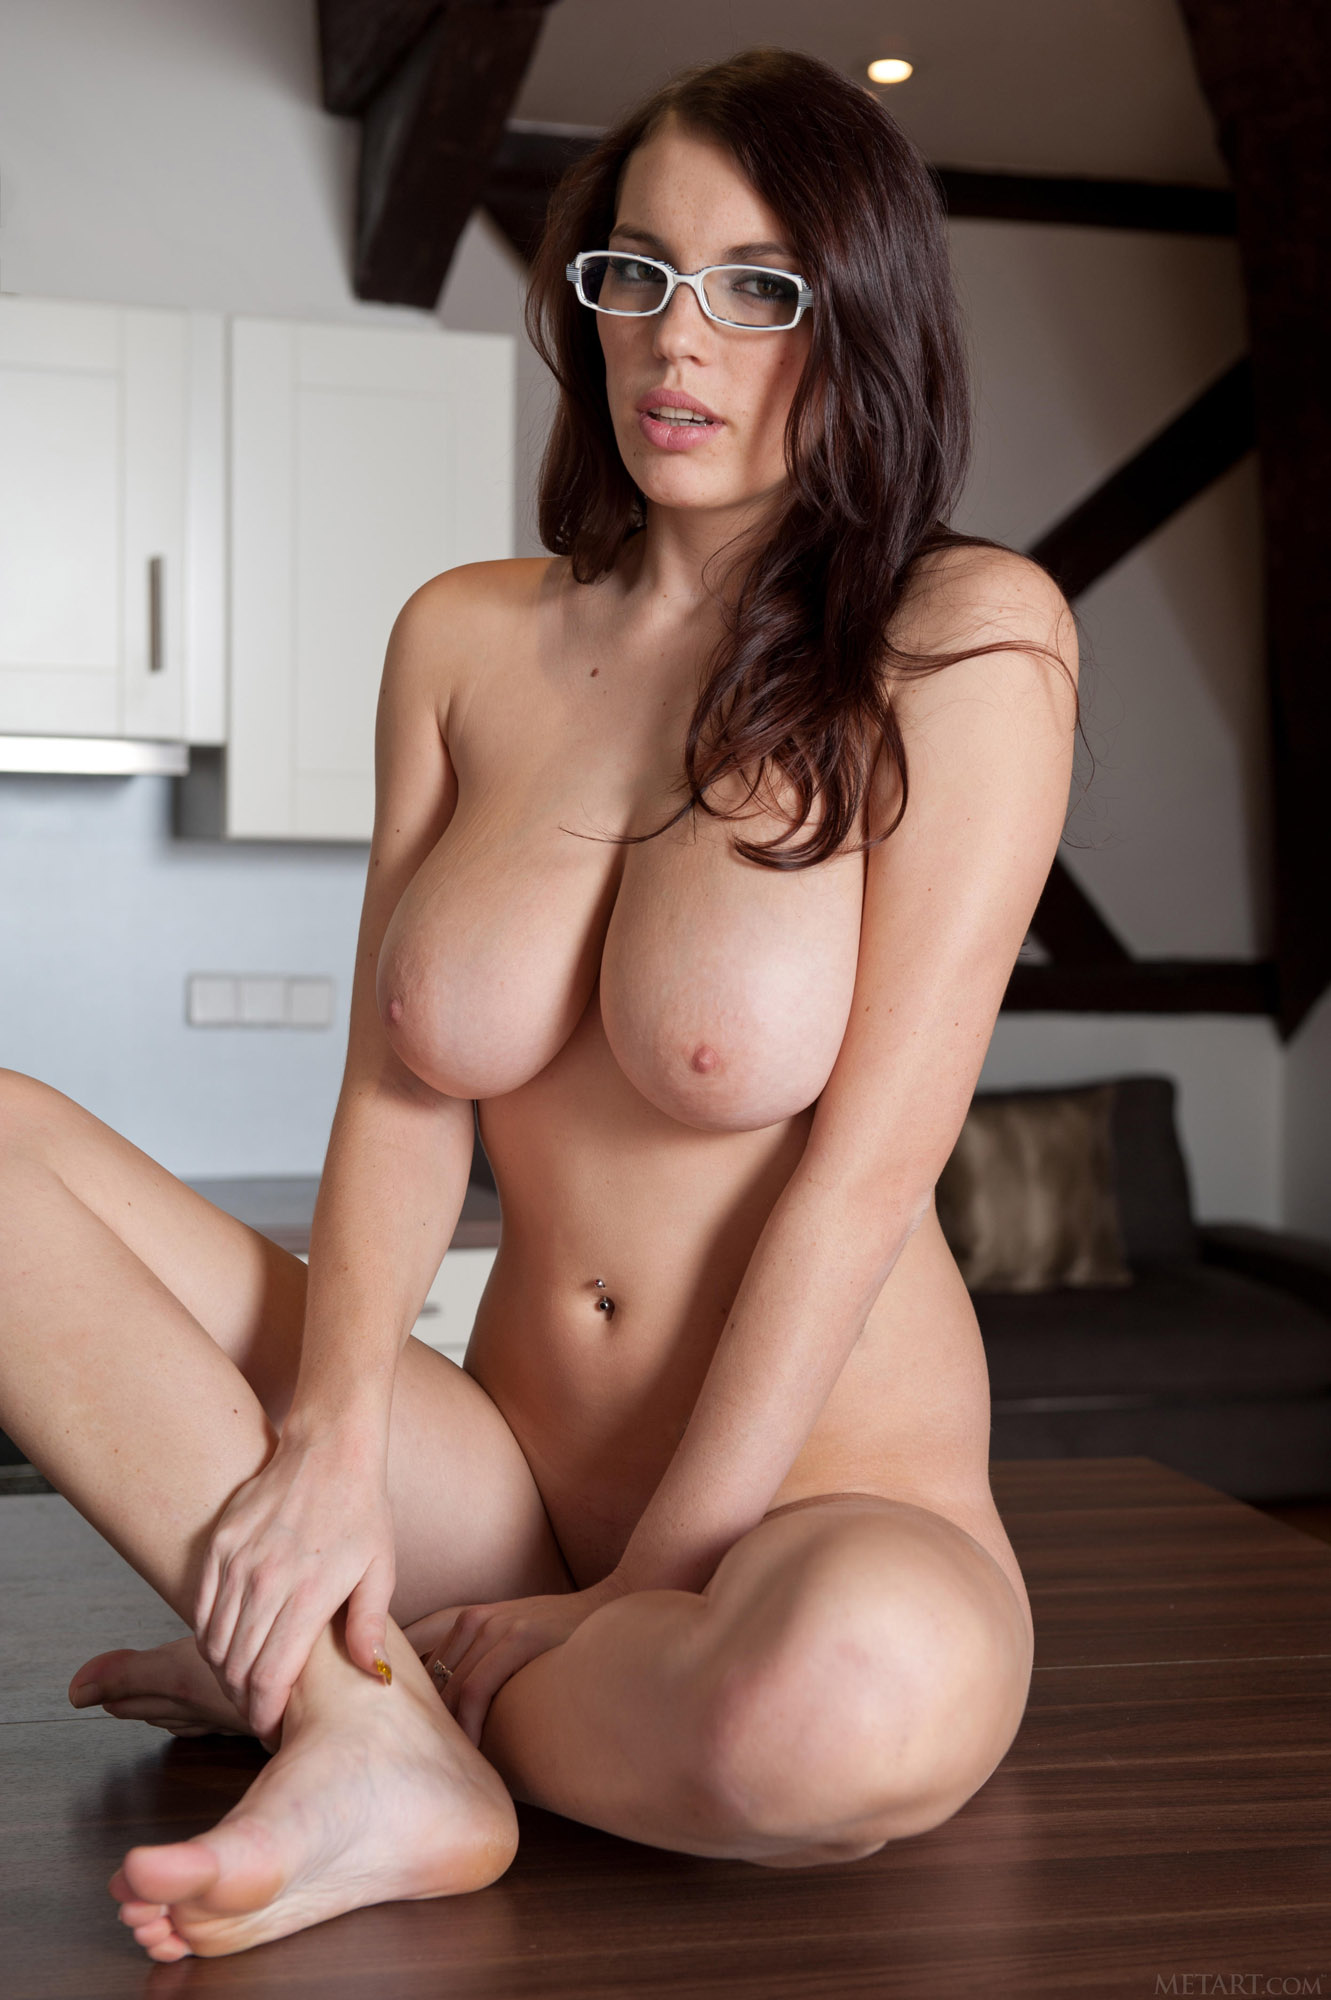 nude-girls-in-glasses-boobs-mix-vol2-64